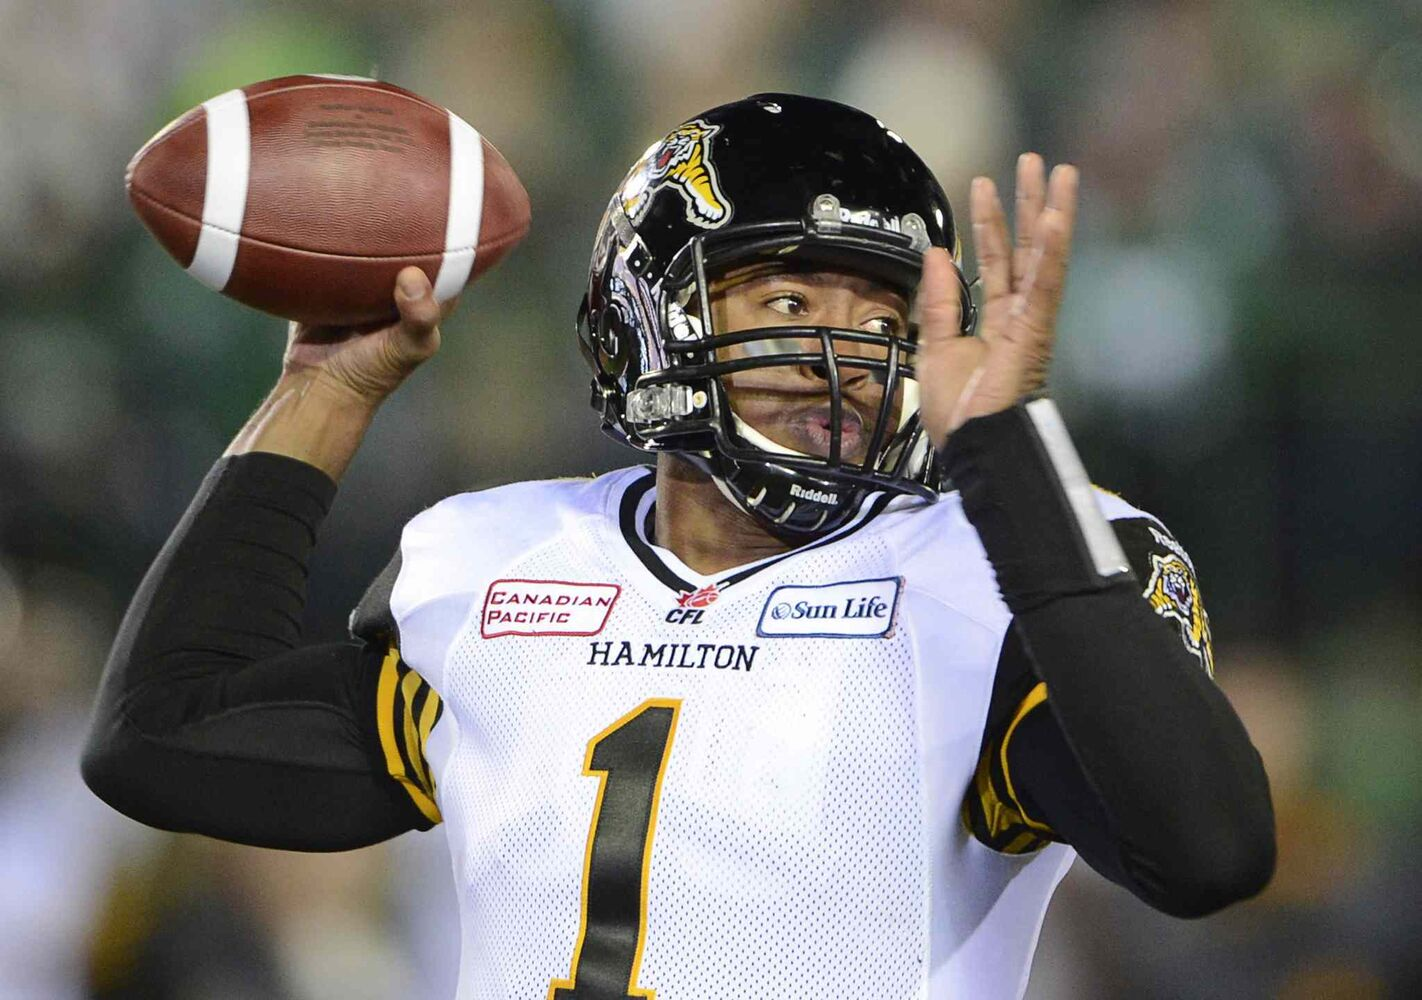 Hamilton Tiger-Cats quarterback Henry Burris fires a pass during the first quarter.